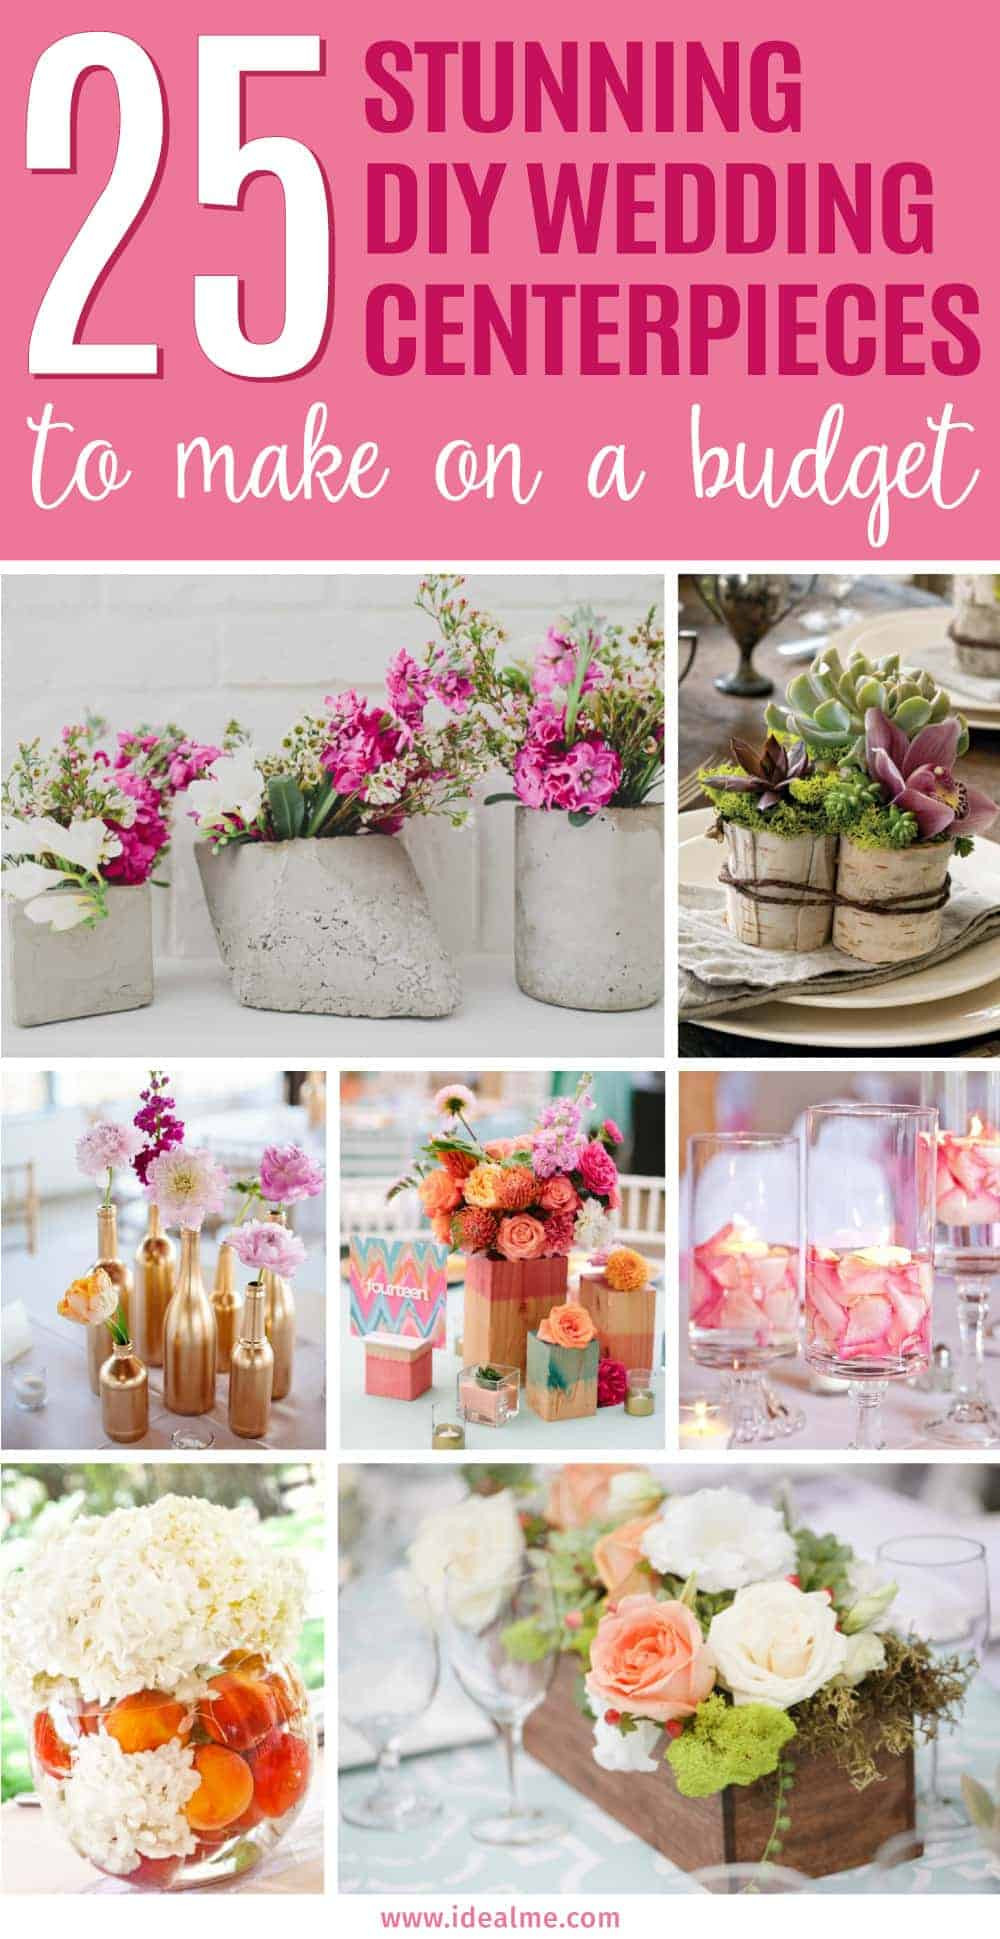 Best ideas about DIY Wedding Centerpiece Ideas . Save or Pin 25 Stunning DIY Wedding Centerpieces to Make on a Bud Now.